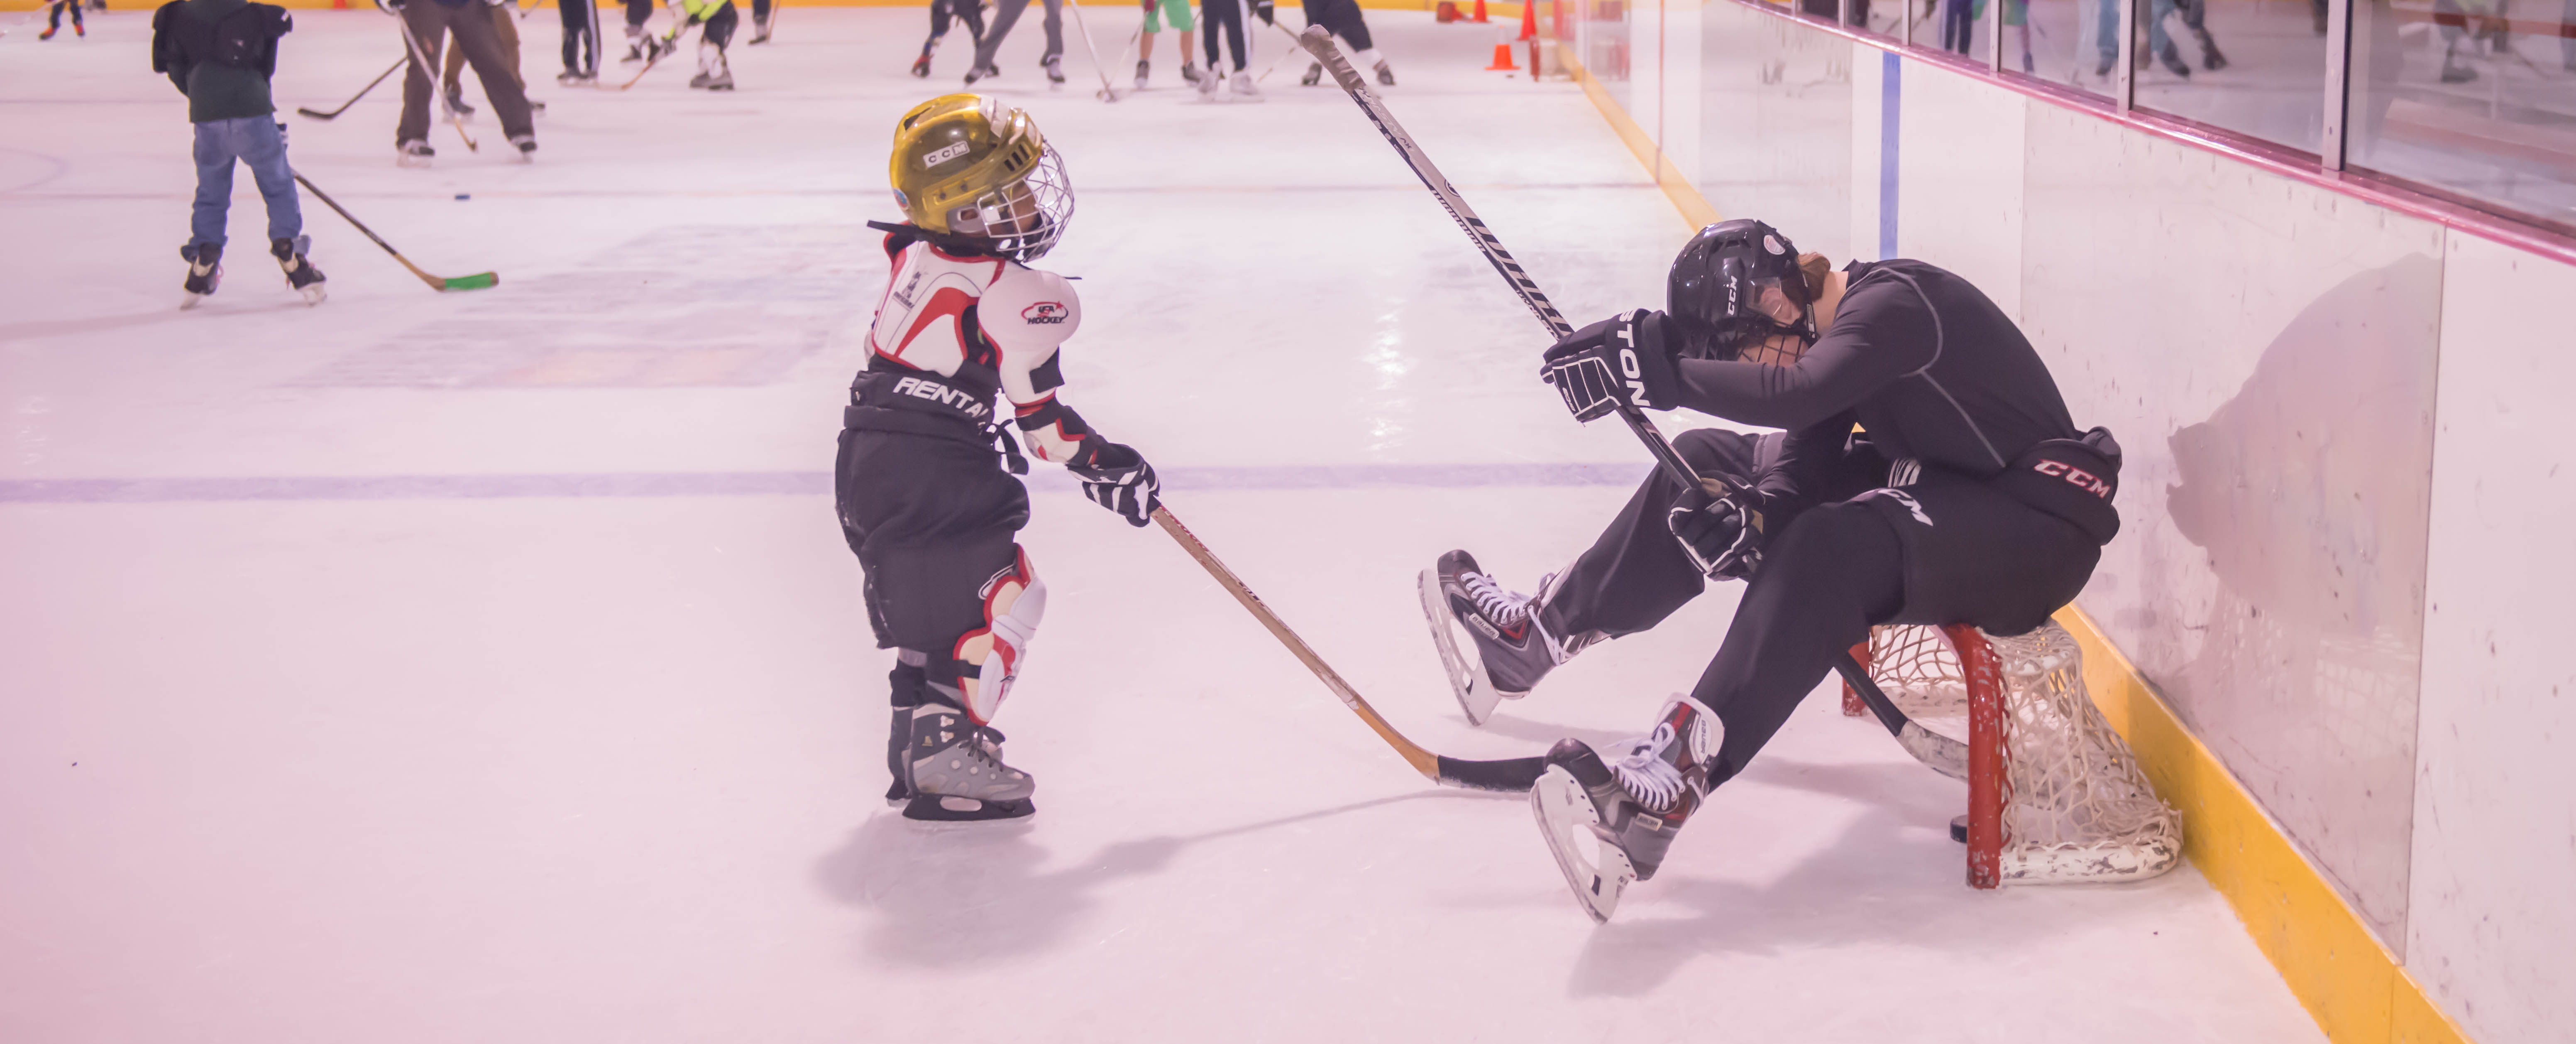 Owen Squires (right) looks for the puck shot by Joshua Mazon during JDIA's Learn to Play afternoon at Treadwell Ice Arena. (Photo by Steve Quinn)